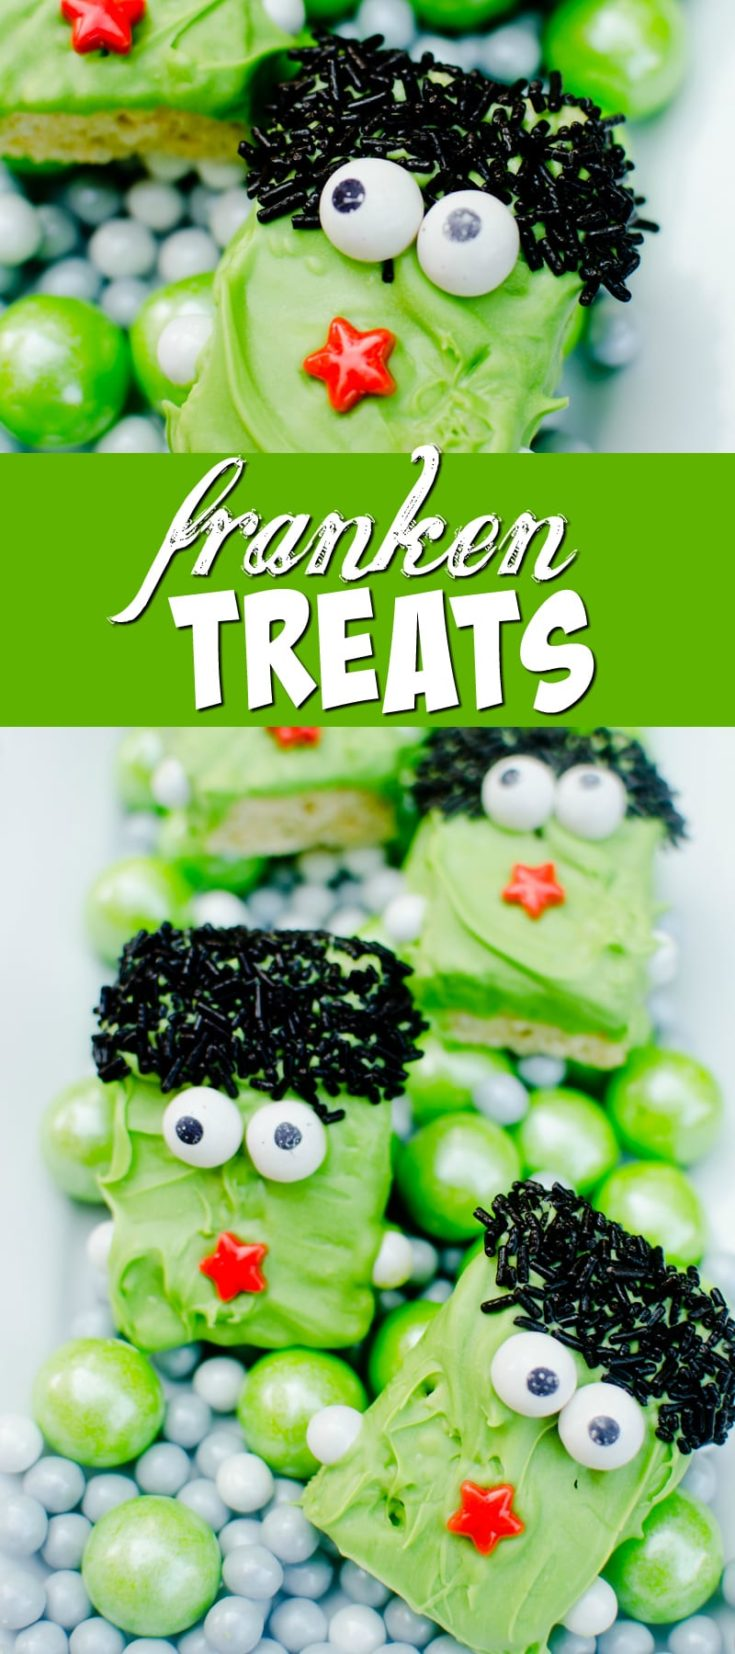 These Franken Treats are a fun and easy treat to make up for Halloween parties or class treats.